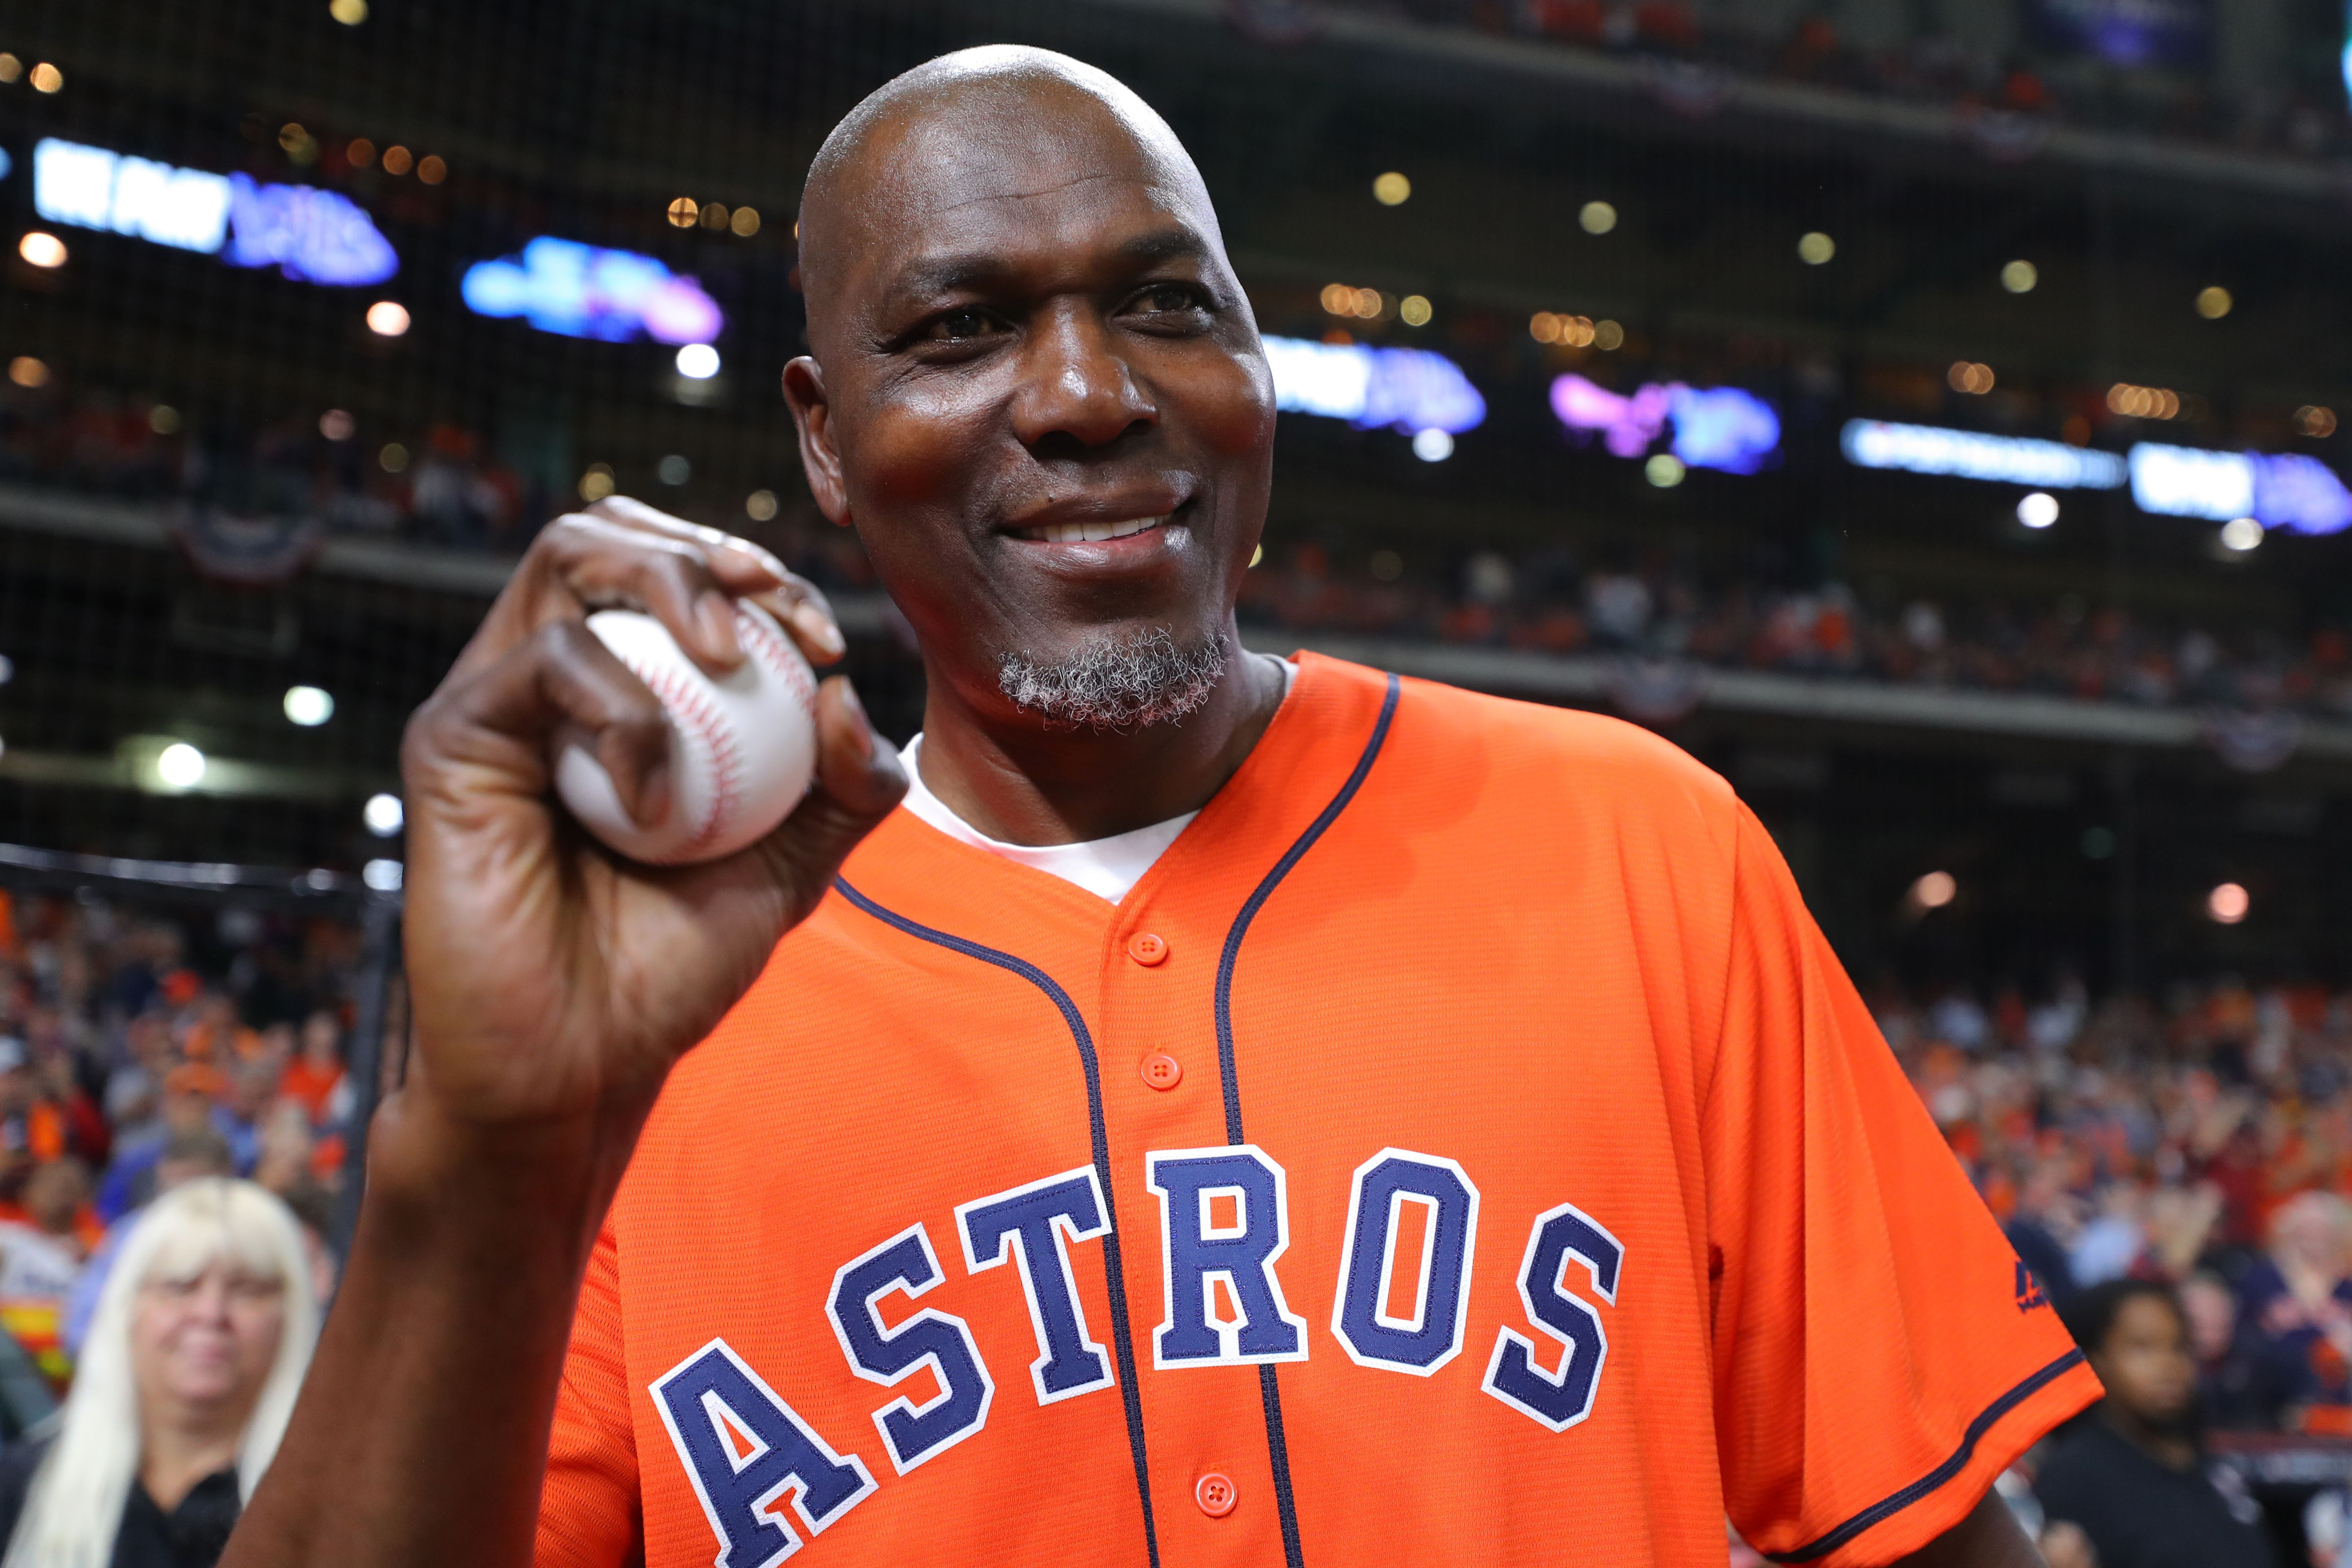 Hakeem Olajuwon holds the game ball prior to Game 6 of the 2019 World Series between the Washington Nationals and the Houston Astros at Minute Maid Park on Tuesday, October 29, 2019 in Houston, Texas. | Source: Getty Images